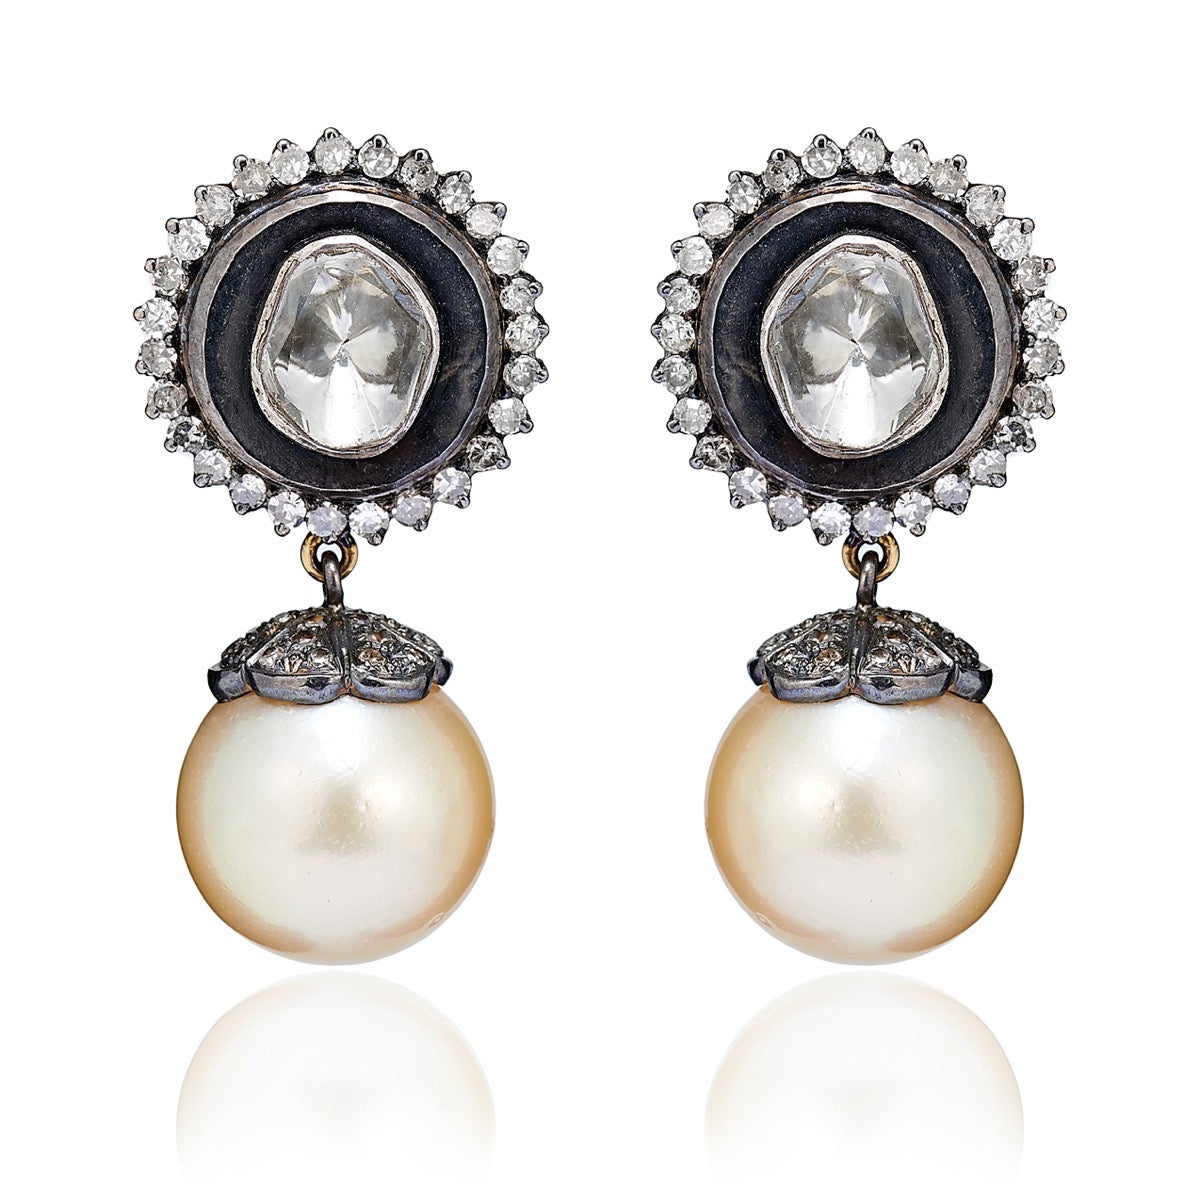 'Antique Star' Pearl and Diamond Earrings